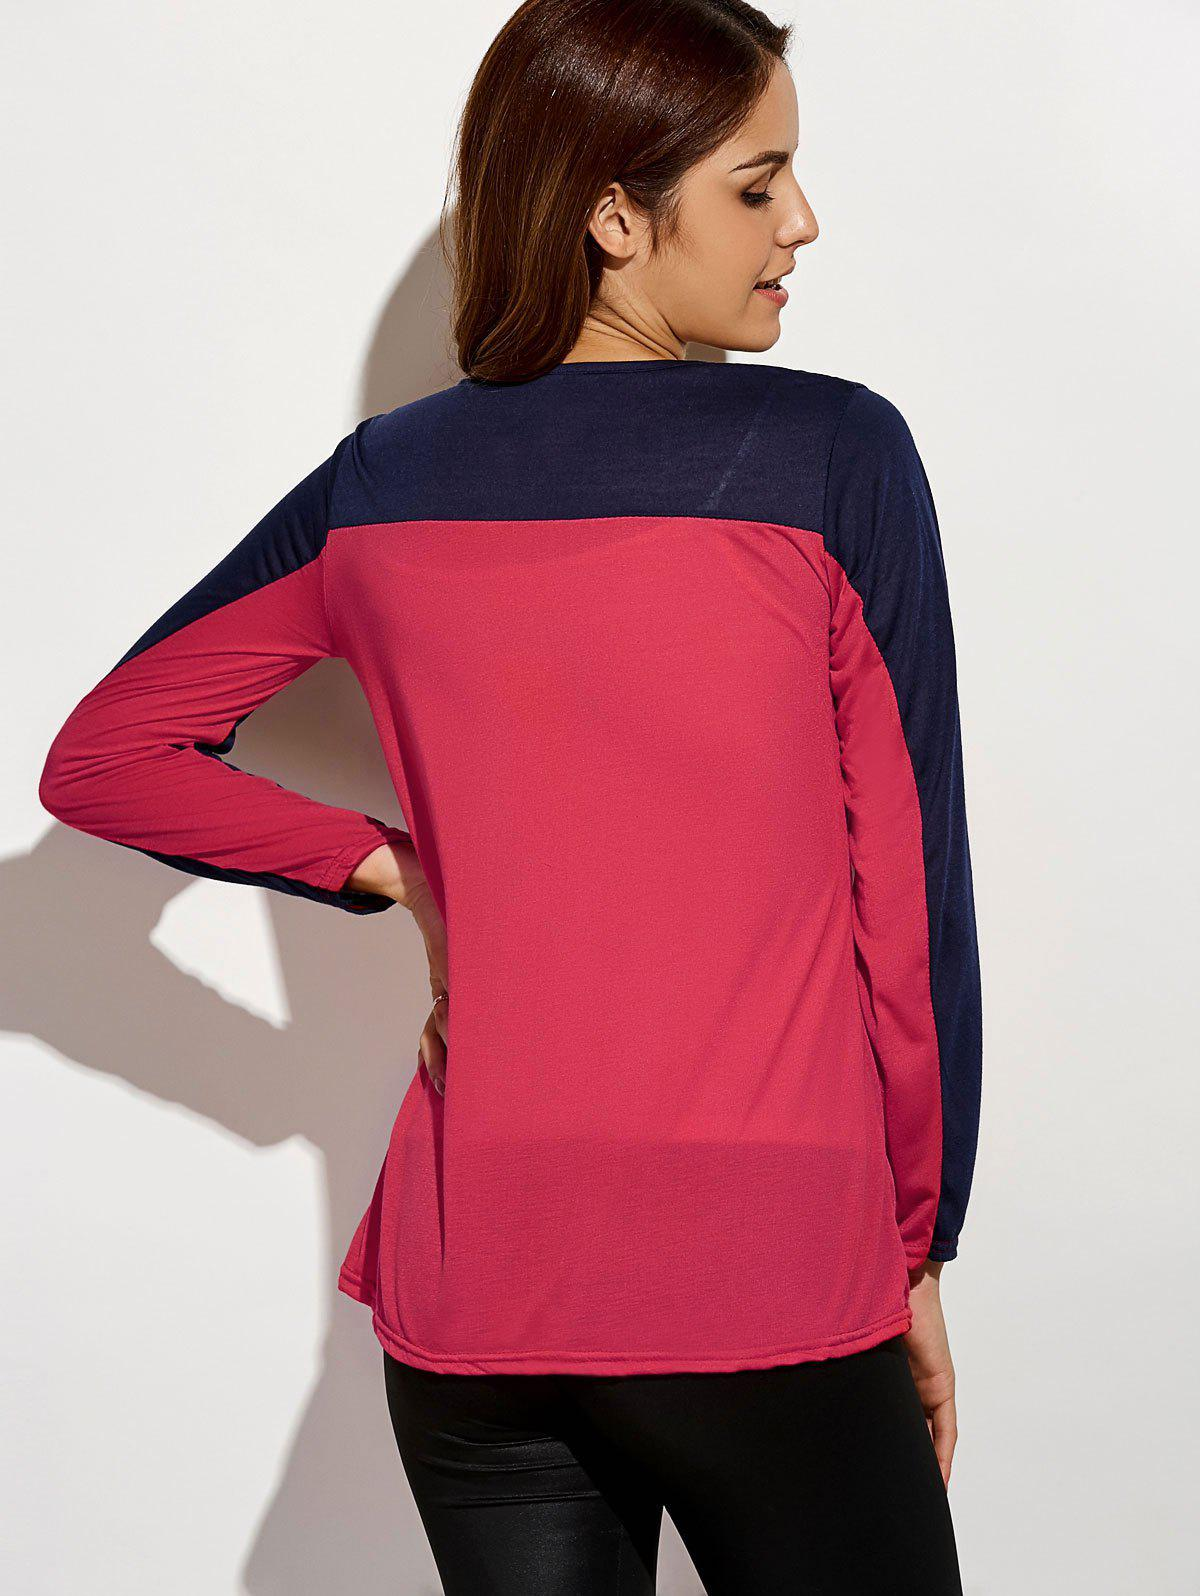 Sequin Long Sleeve Color Block T-Shirt - RED S